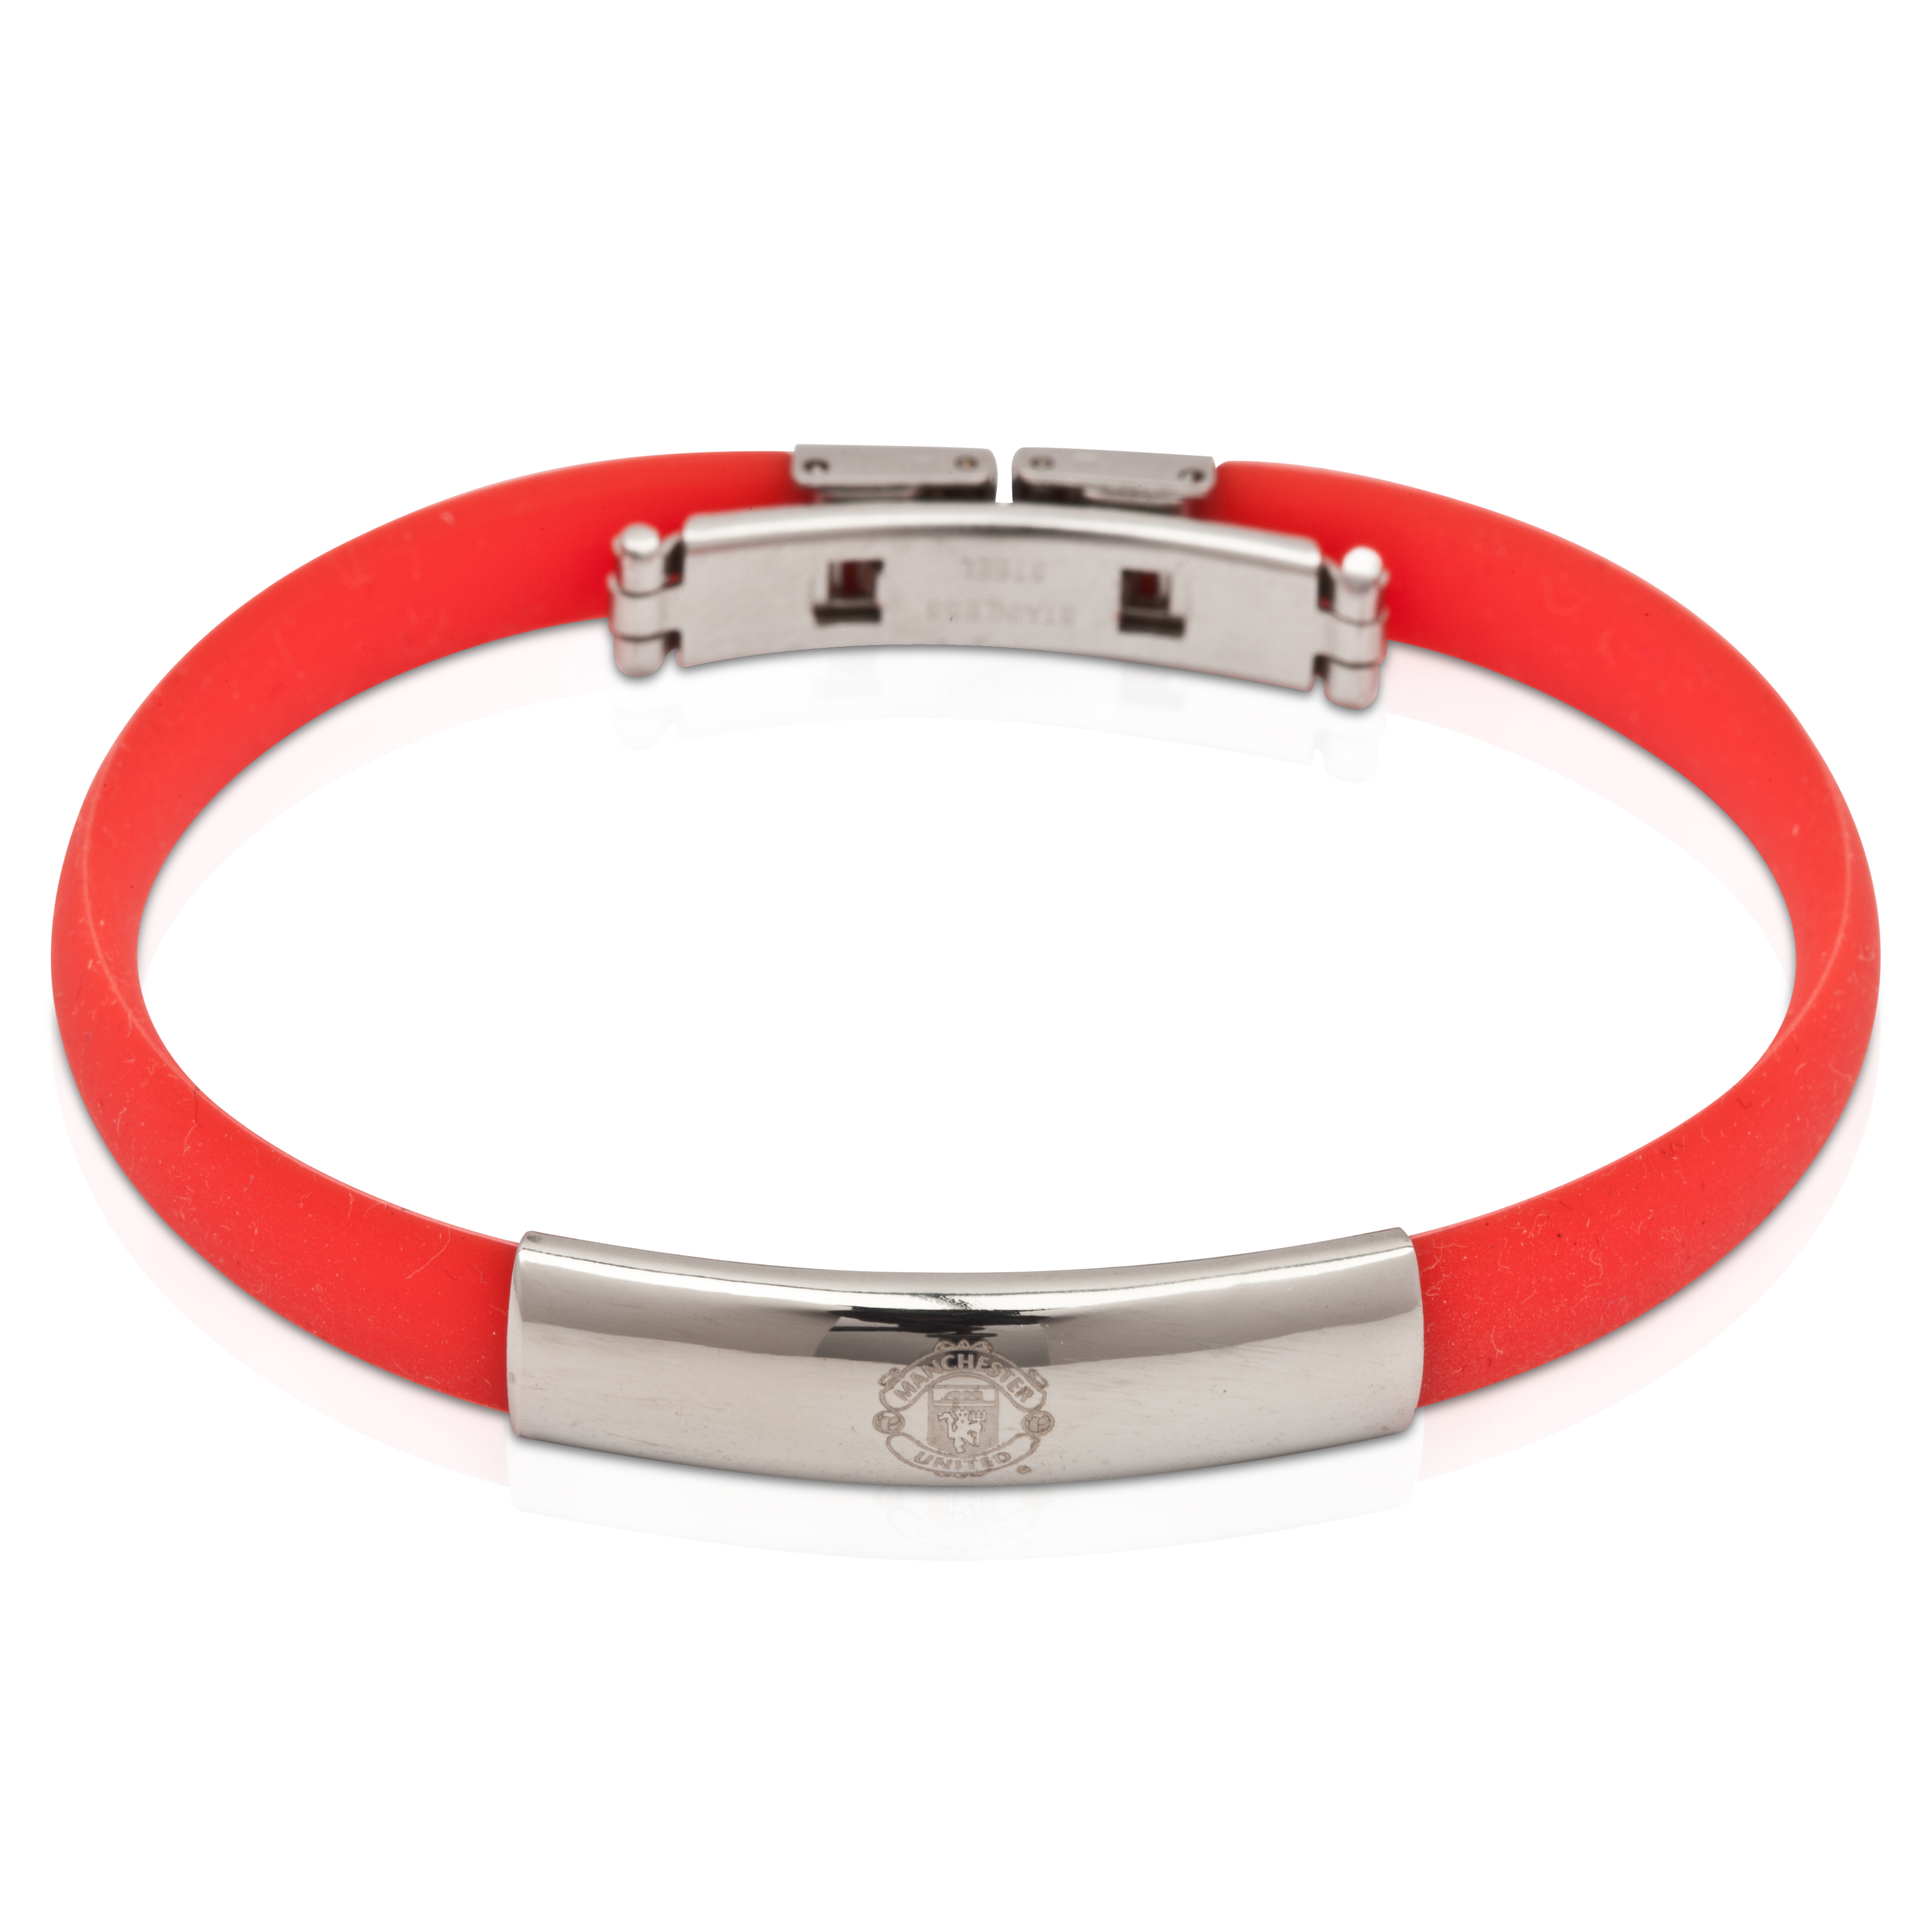 Manchester United Rubber Band Crest Bracelet - Stainless Steel